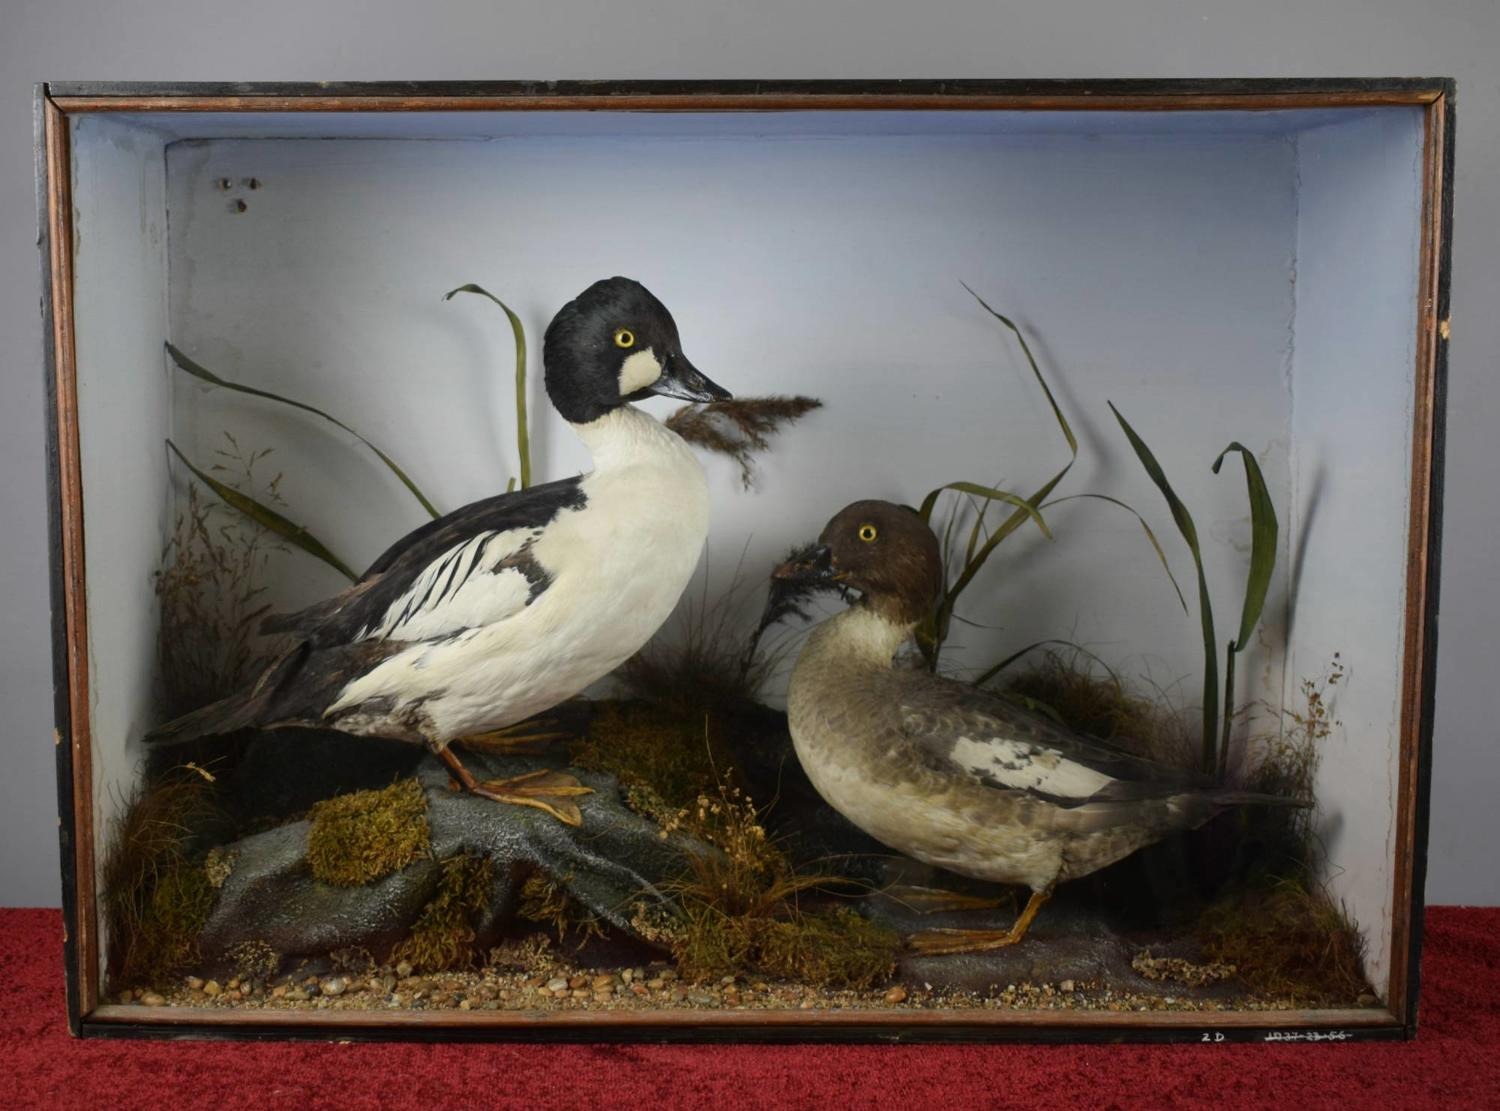 Edwardian Cased Taxidermy Ducks